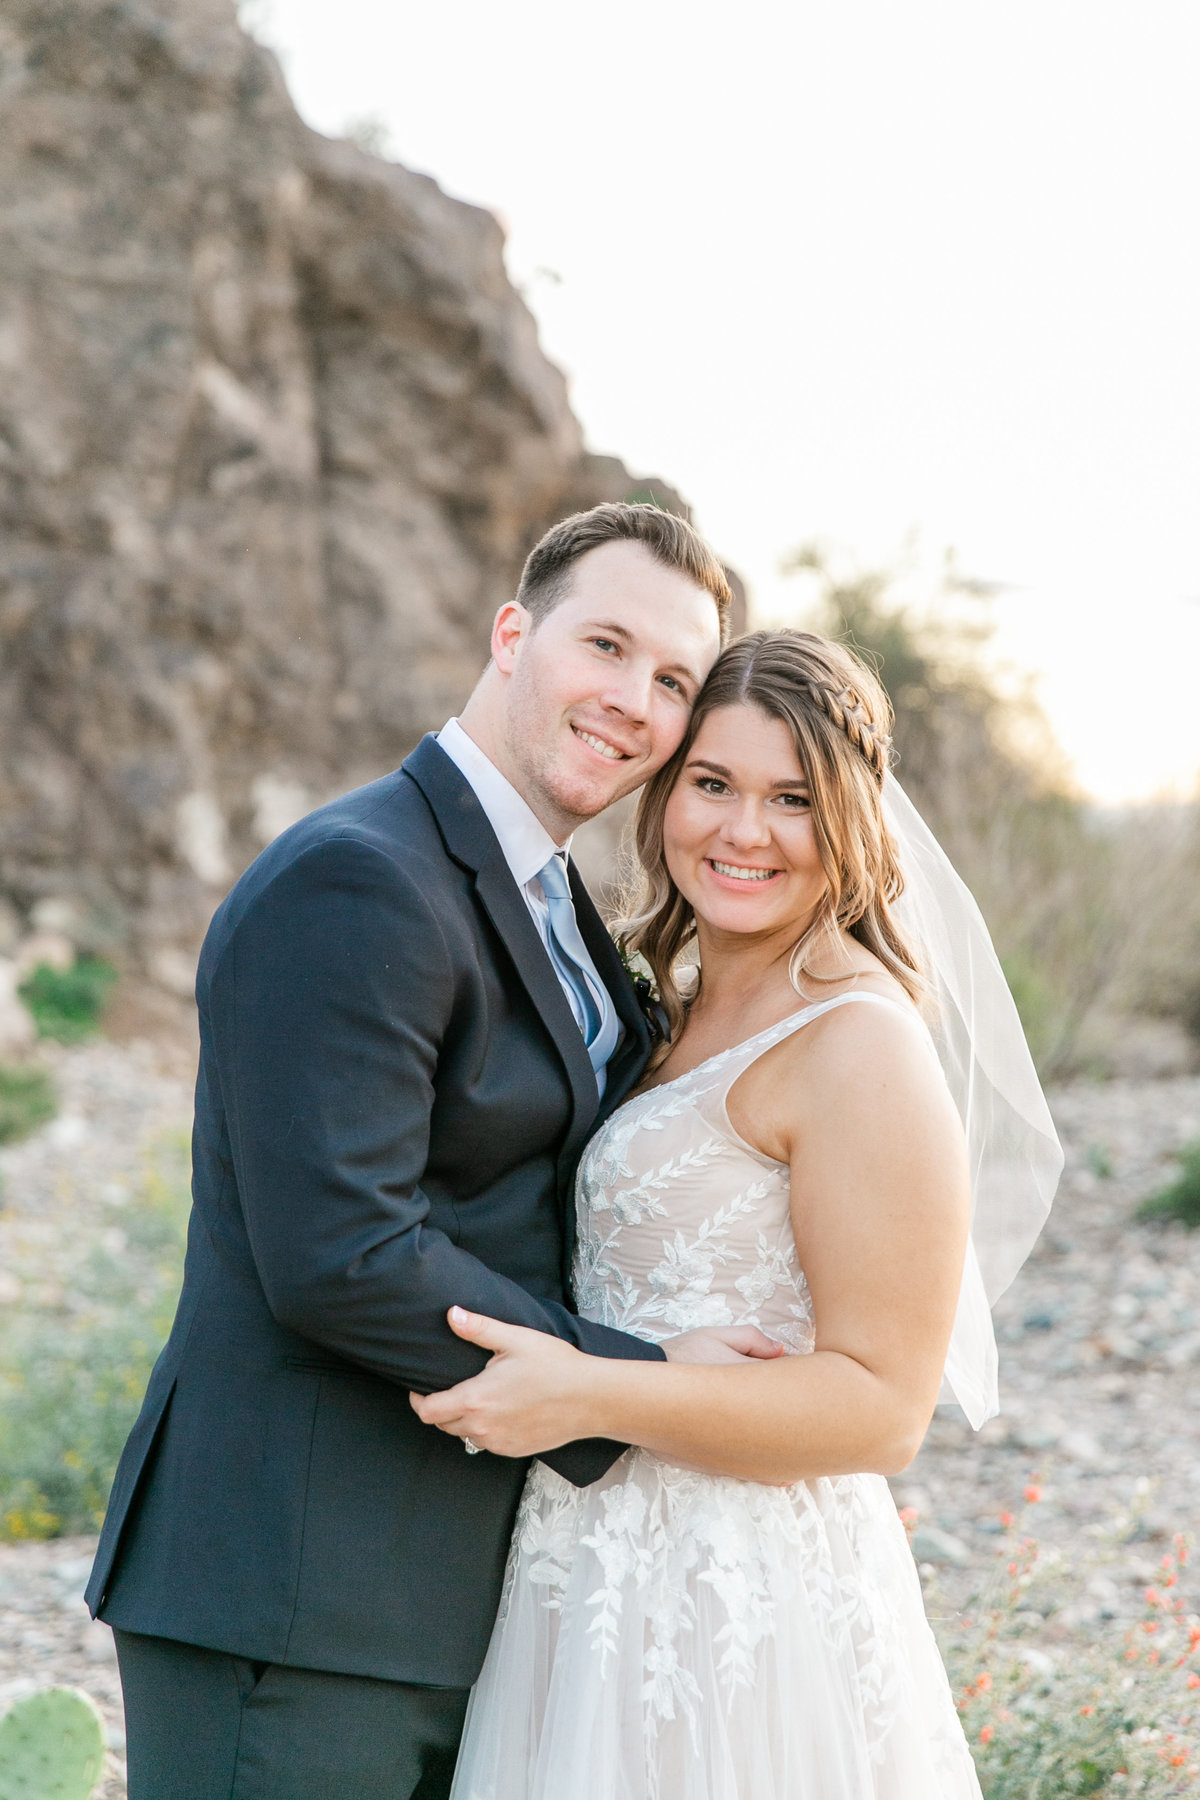 Karlie Colleen Photography - Arizona Backyard wedding - Brittney & Josh-236